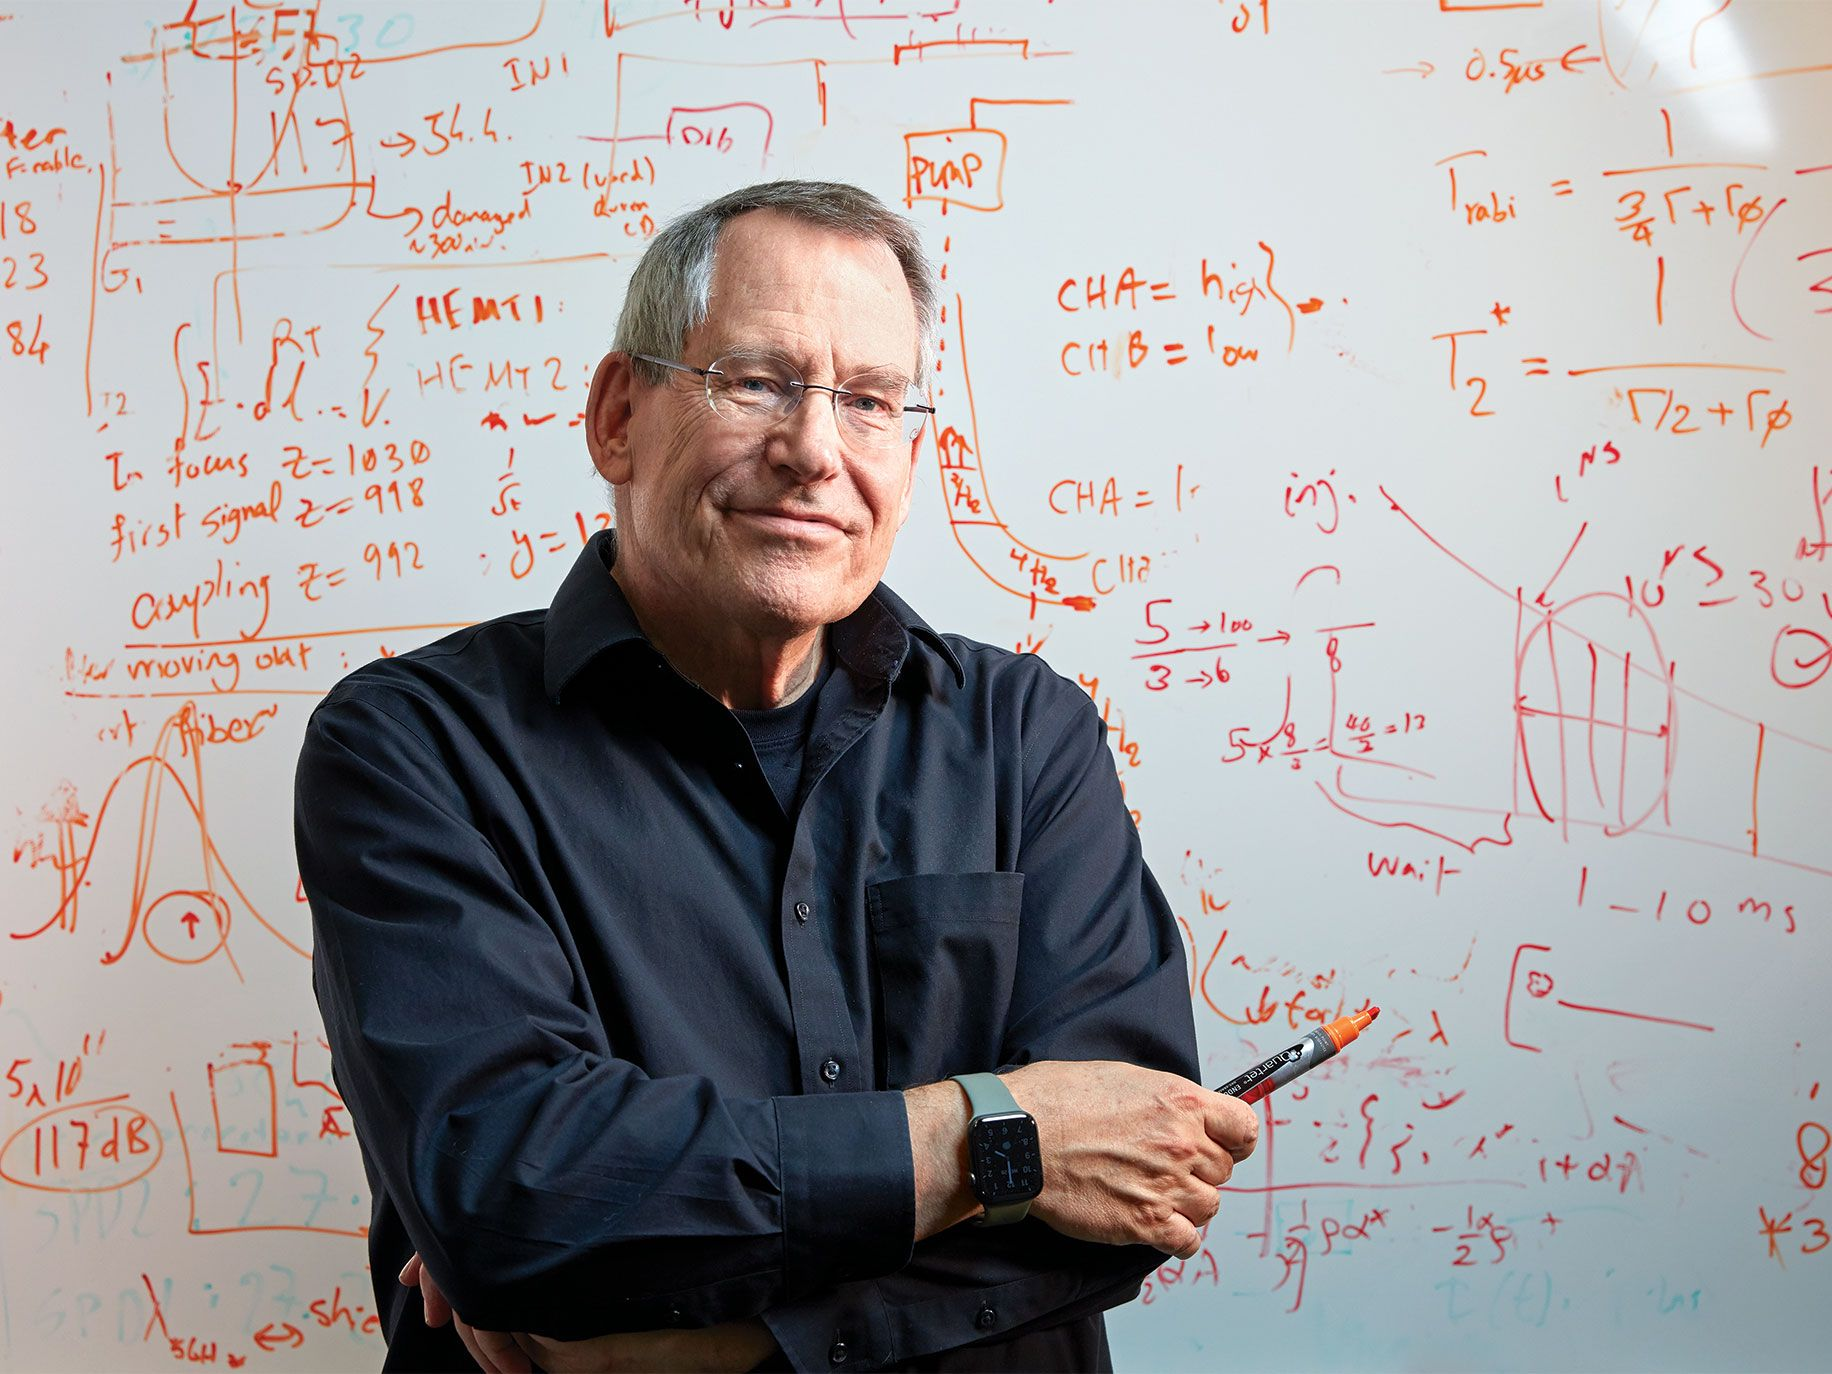 John Preskill, a quantum-computing expert at the California Institute of Technology, cautions against the hype surrounding this area of research.